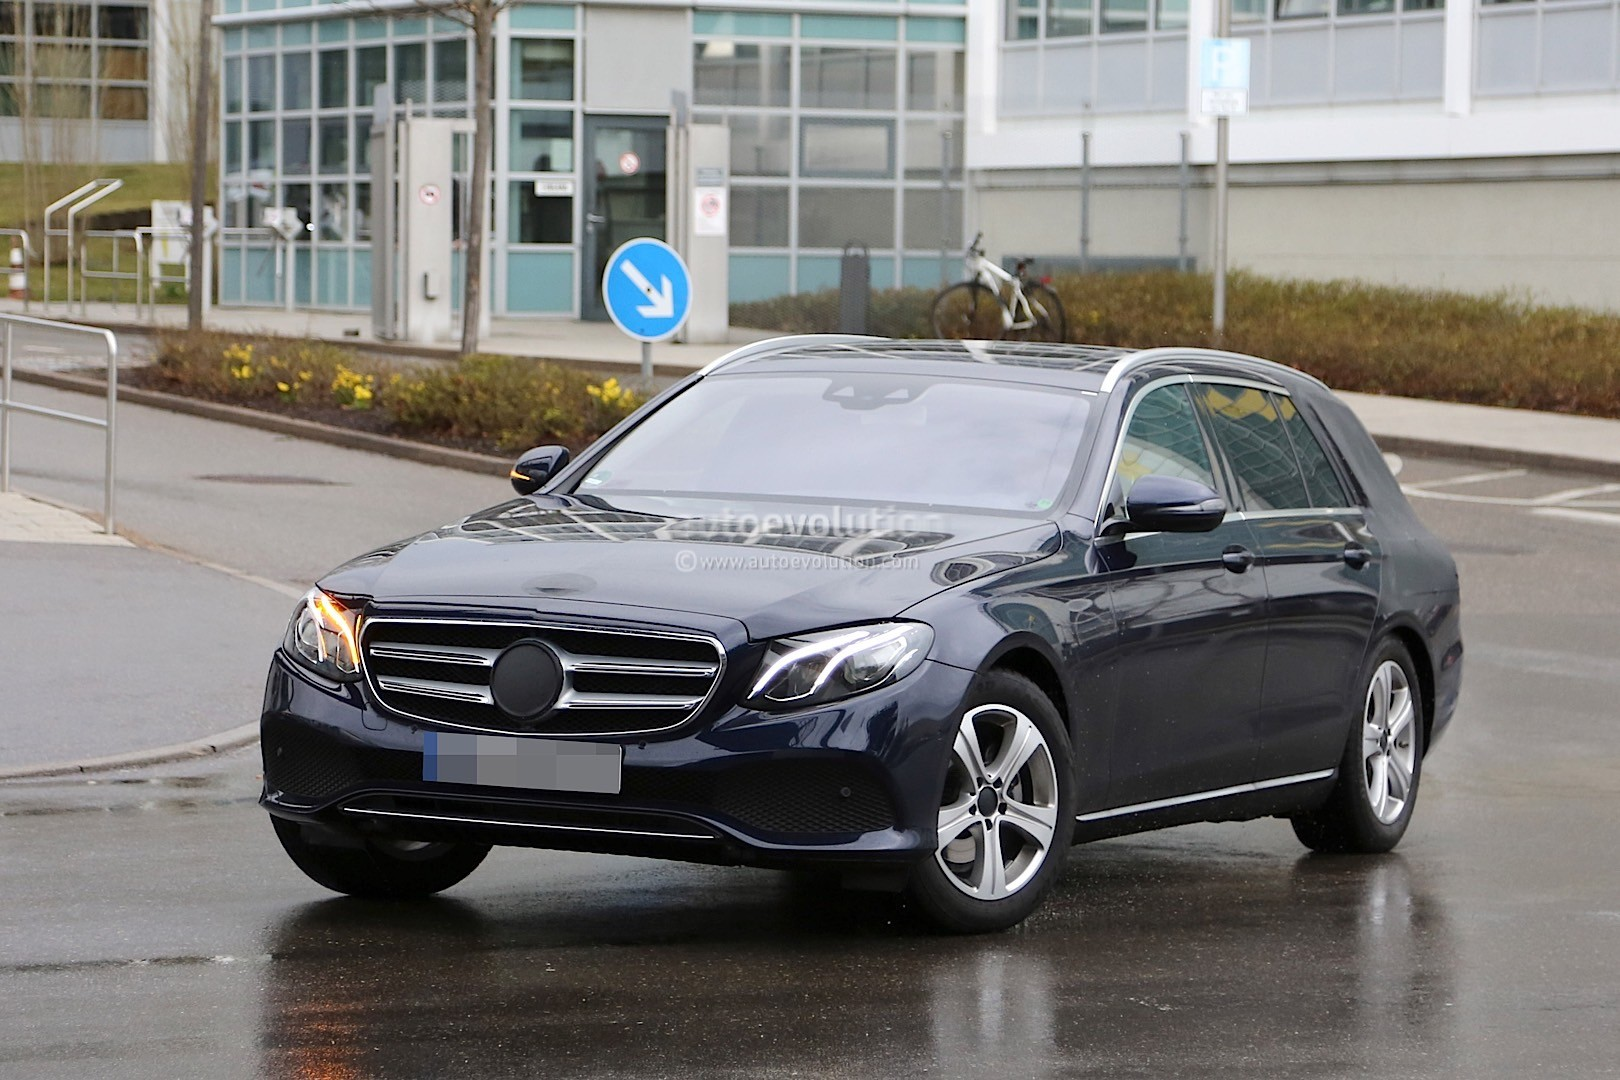 2017 mercedes benz e class t modell proves elegance and practicality mix autoevolution. Black Bedroom Furniture Sets. Home Design Ideas